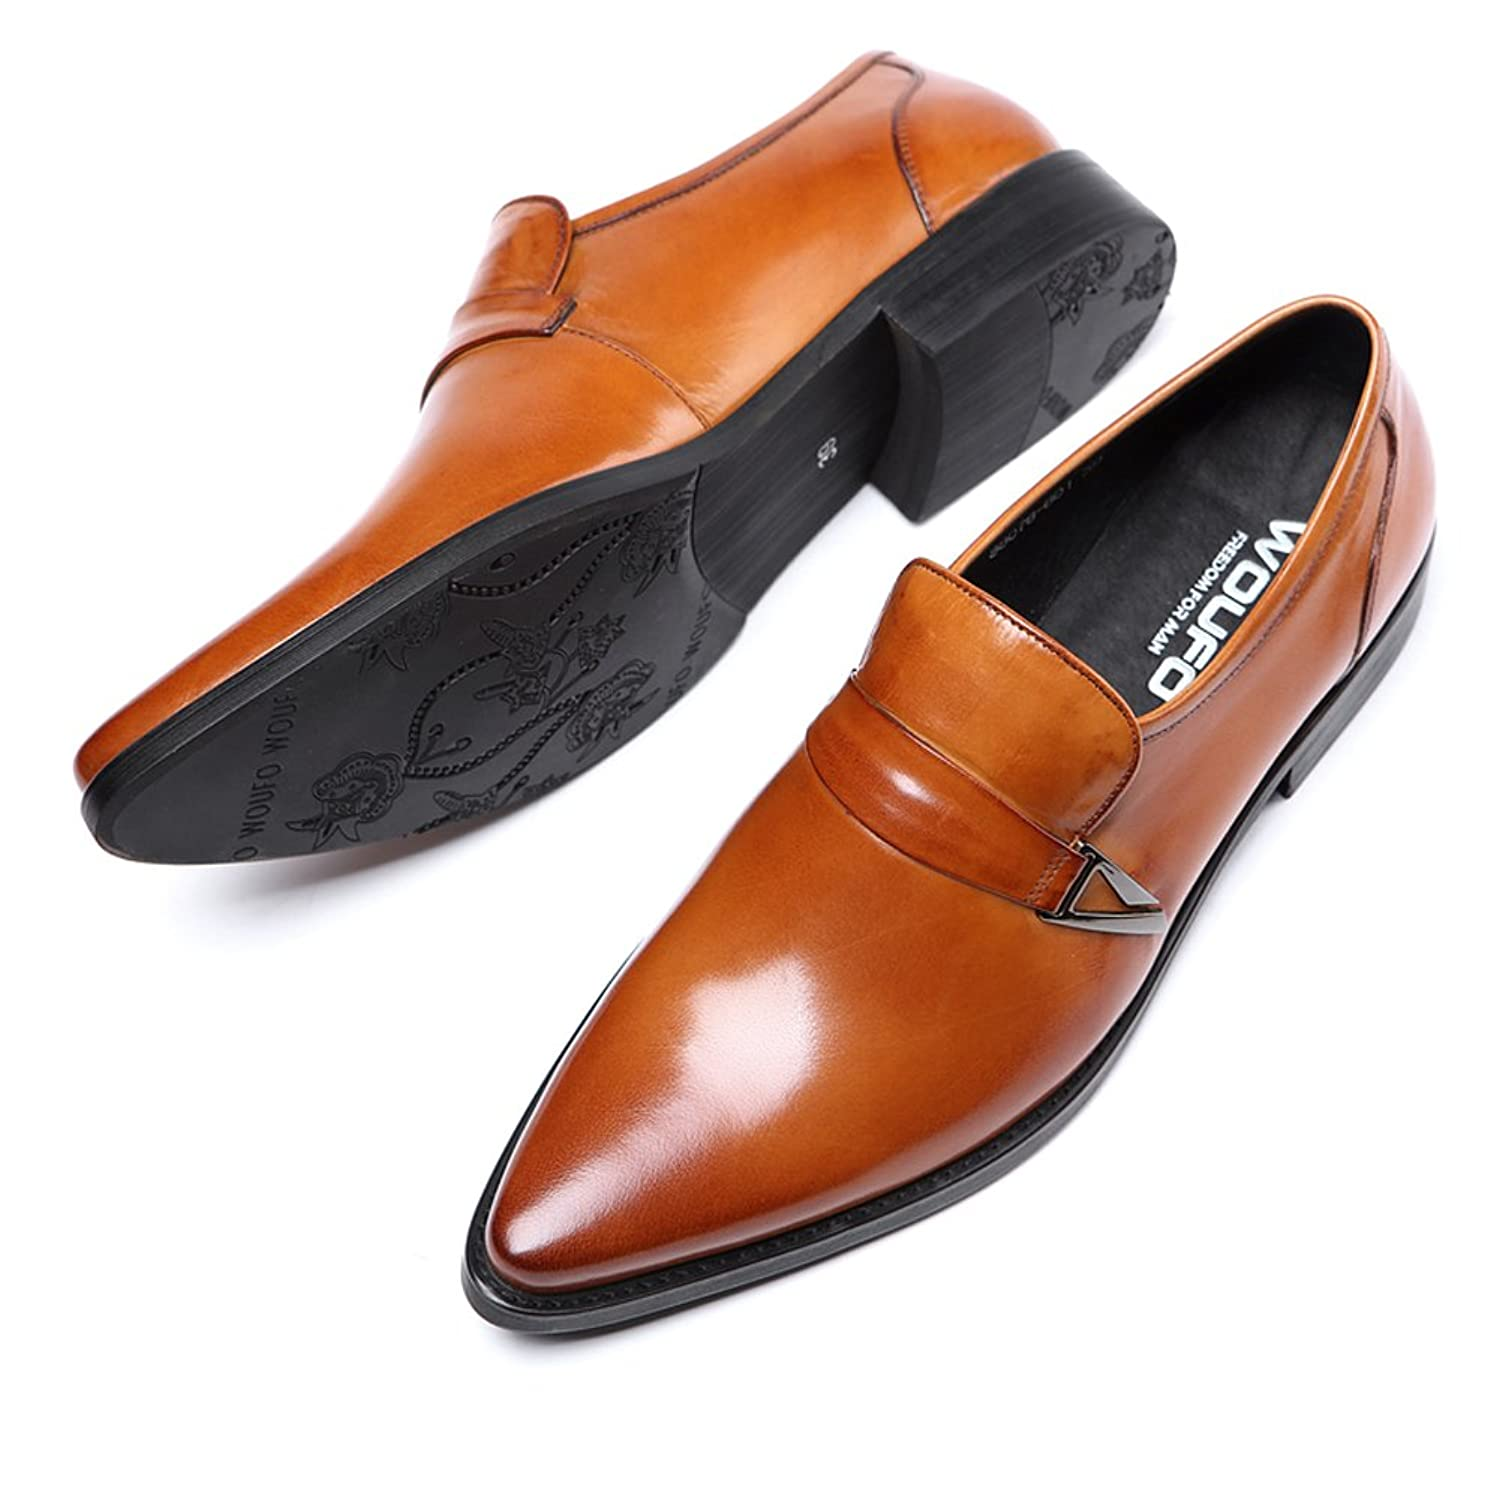 New Loafer Shoes/Innovative Penny ShoesGenuine LeatherPlain Pointed ToeRubber Sole; Fashion and Formal;Red US6.5=EU39